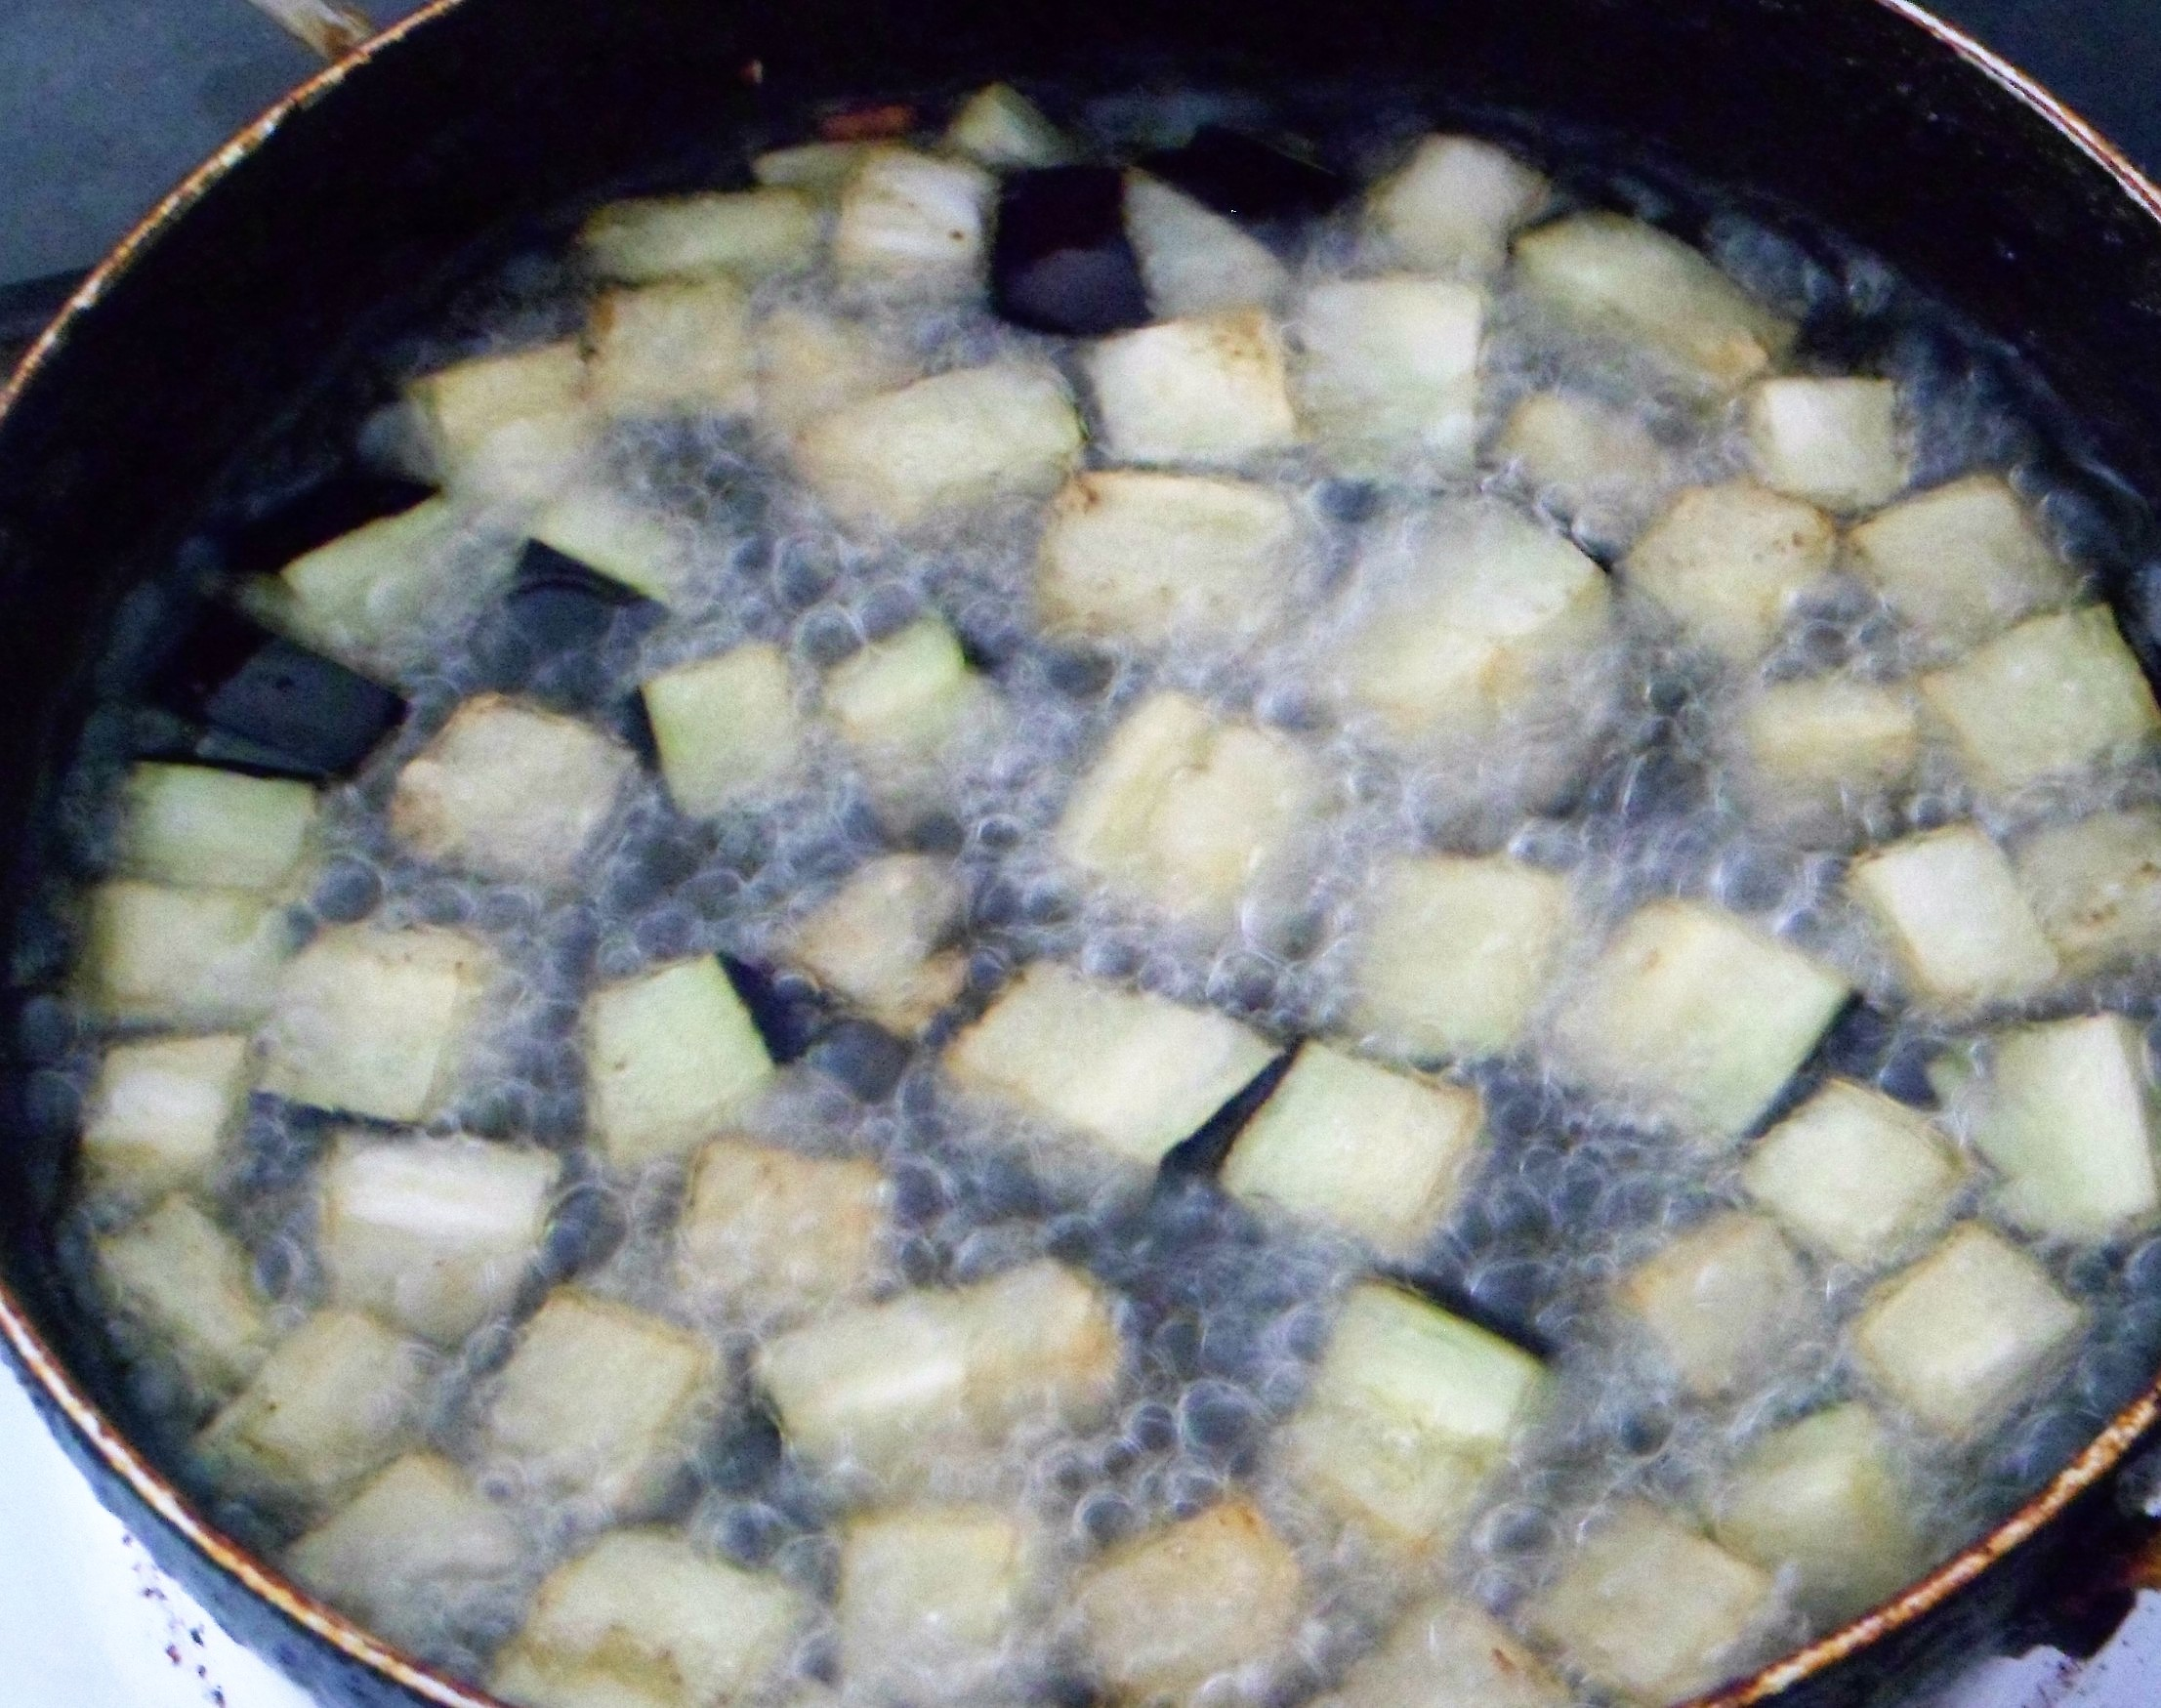 Picture of First Step Is to Fry the Chopped Brinjals